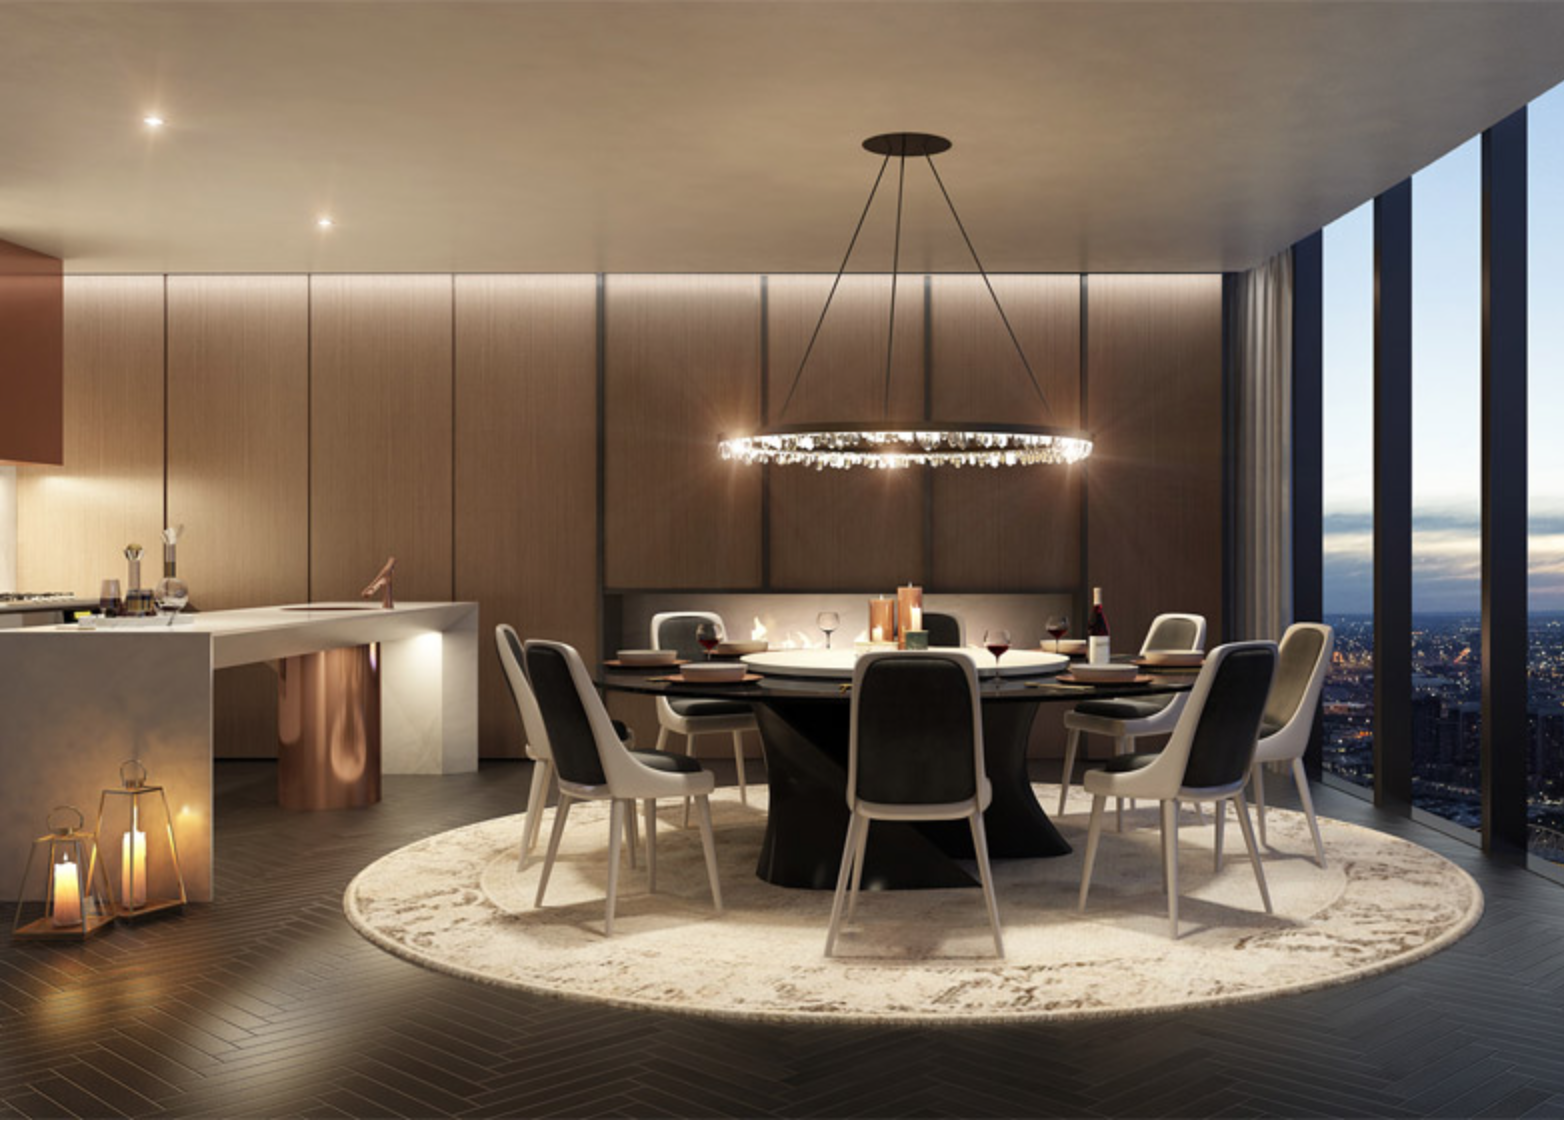 Interiors are as luxurious and attractive as the outer curved glass façade.